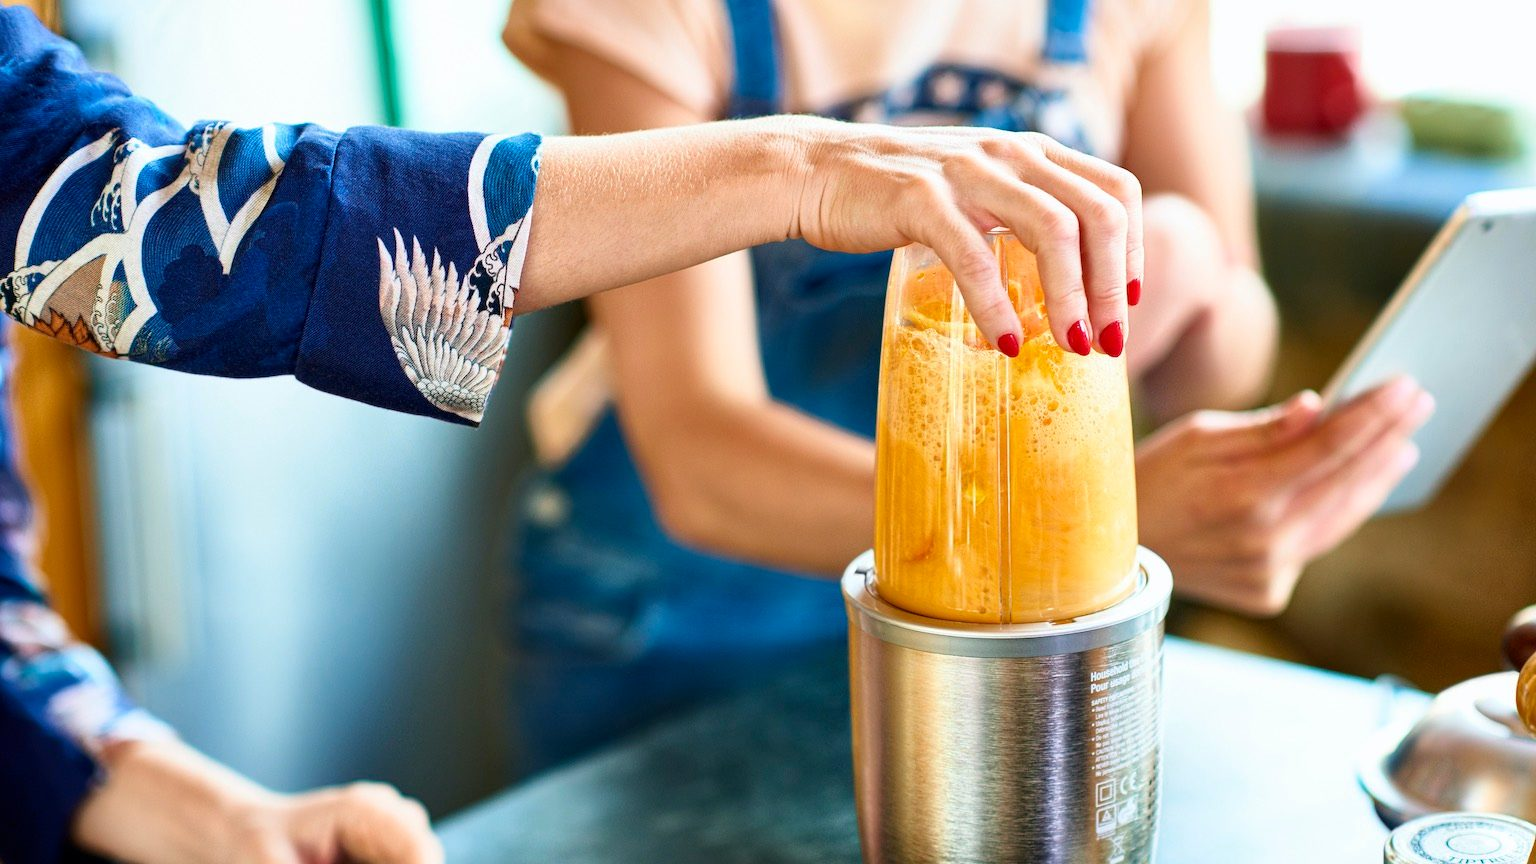 Hand of woman preparing smoothie in blender, daughter holding tablet in background